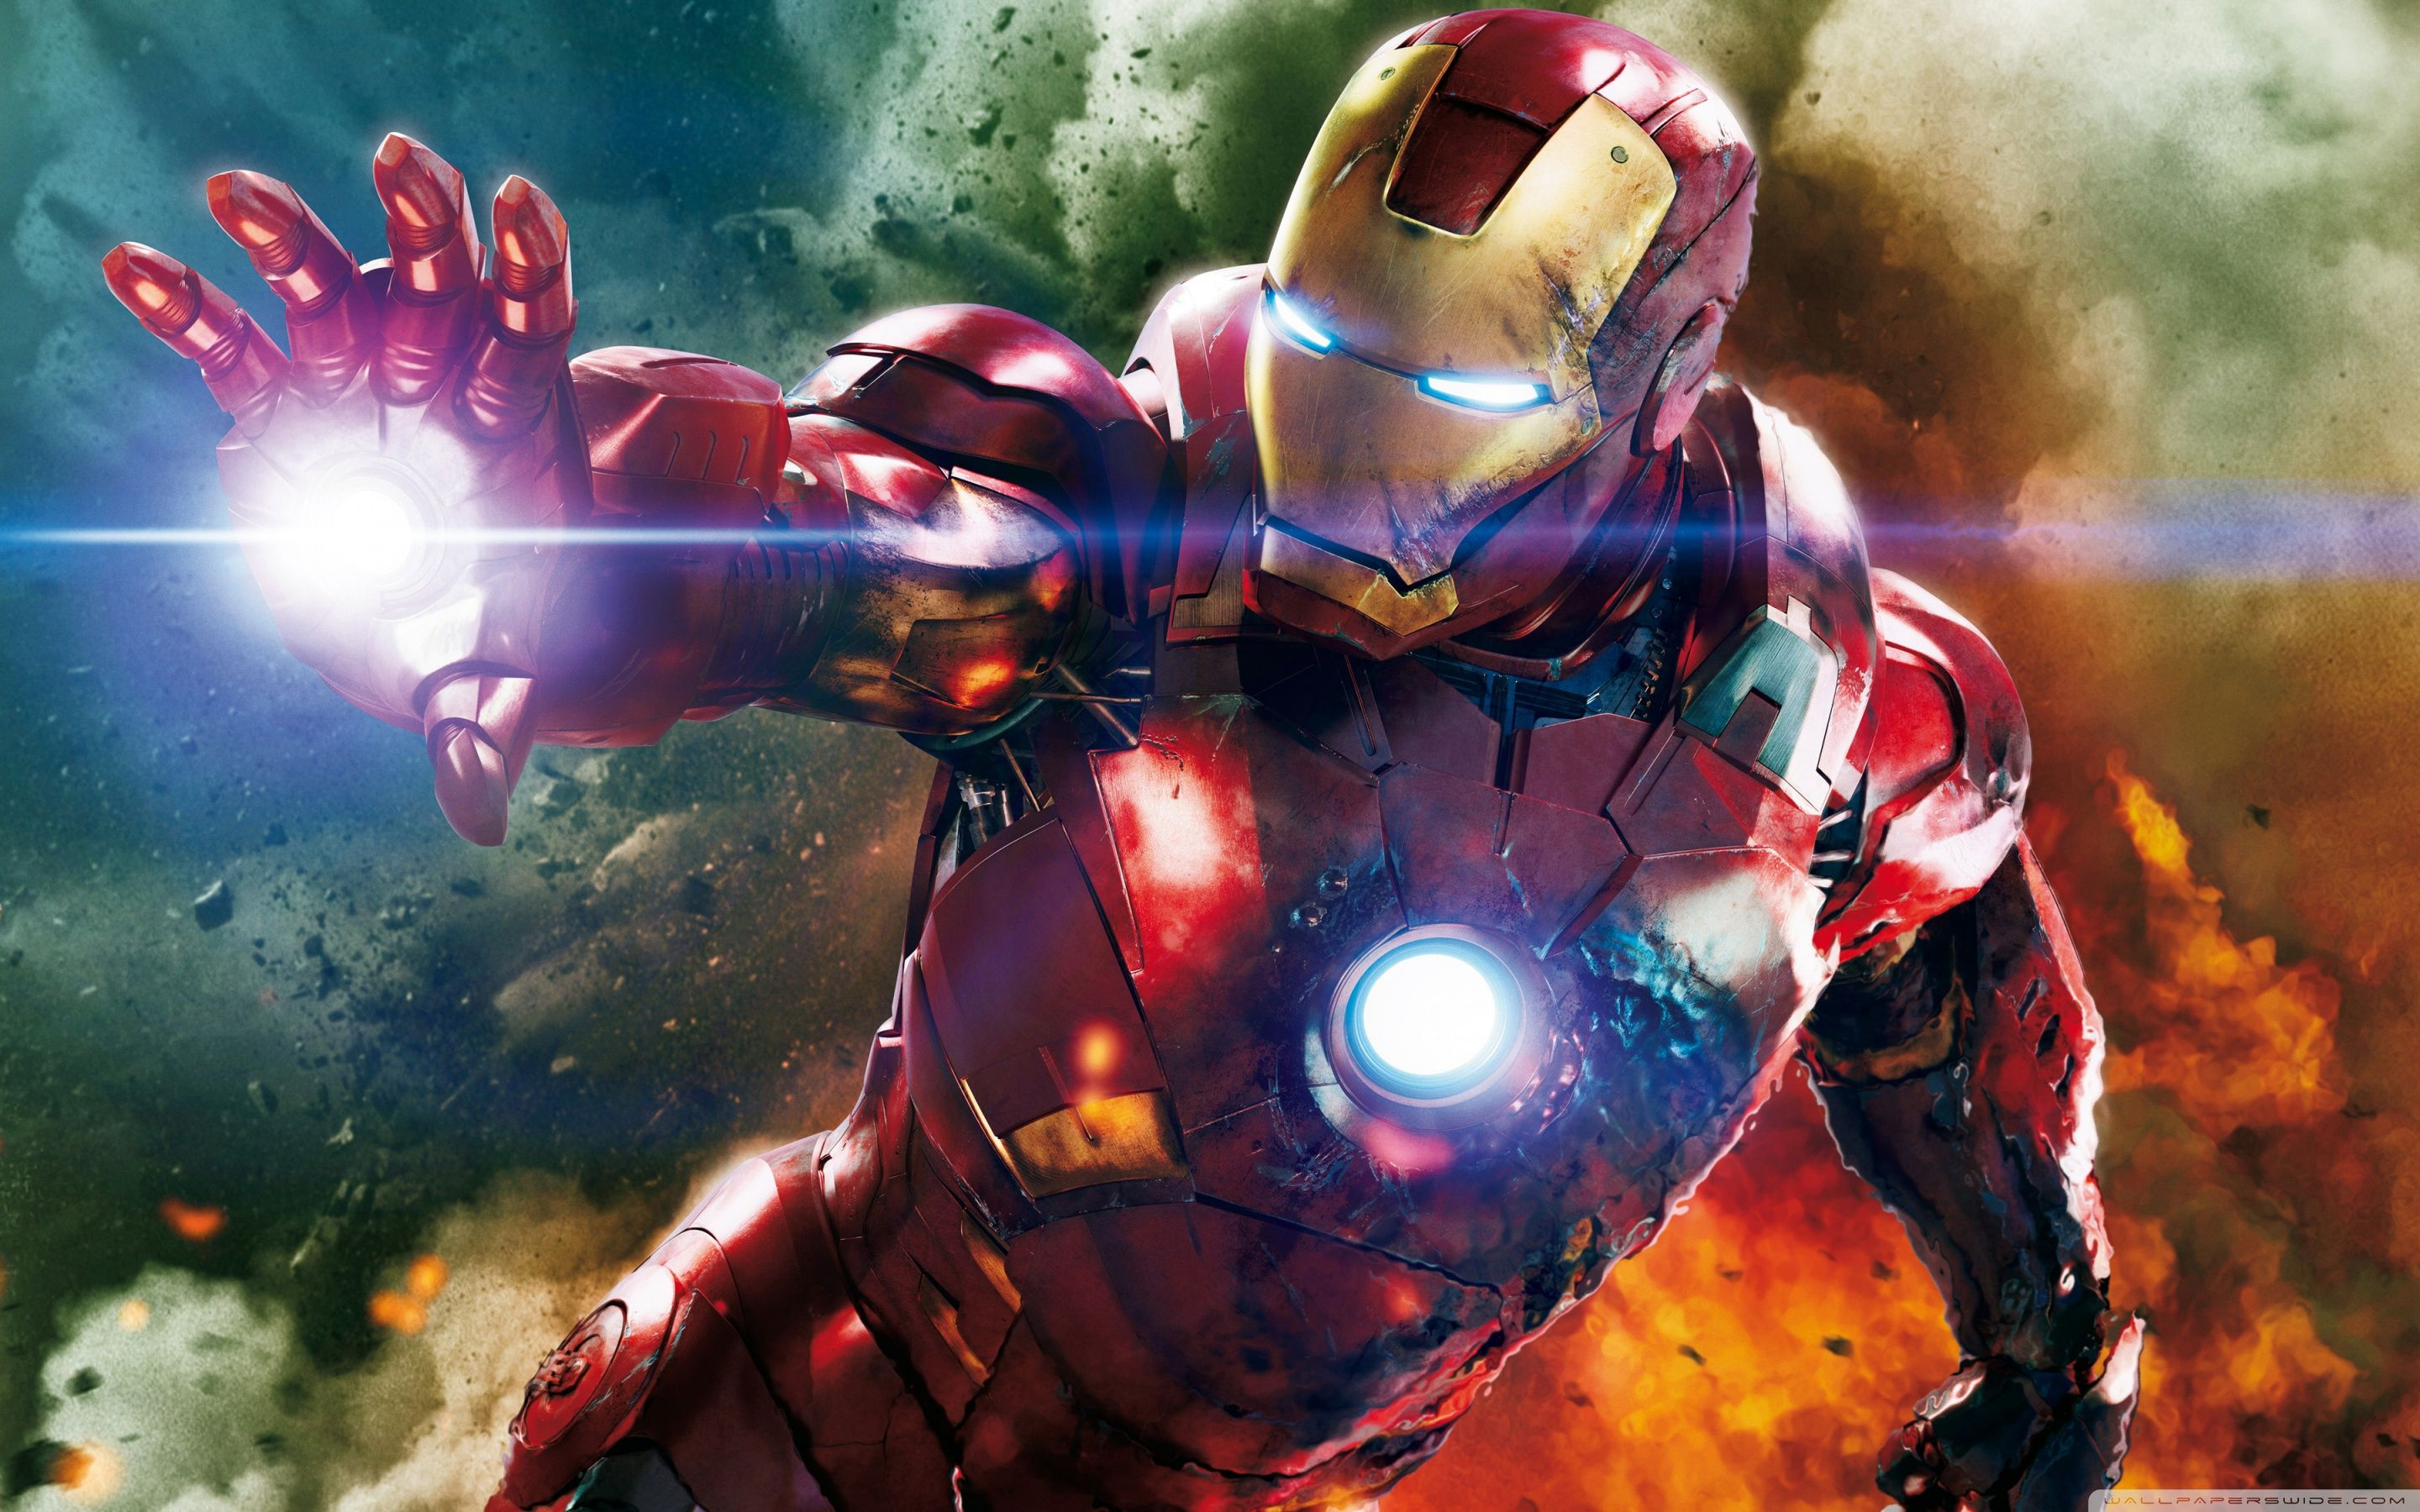 Iron Man Avengers Wallpapers Top Free Iron Man Avengers